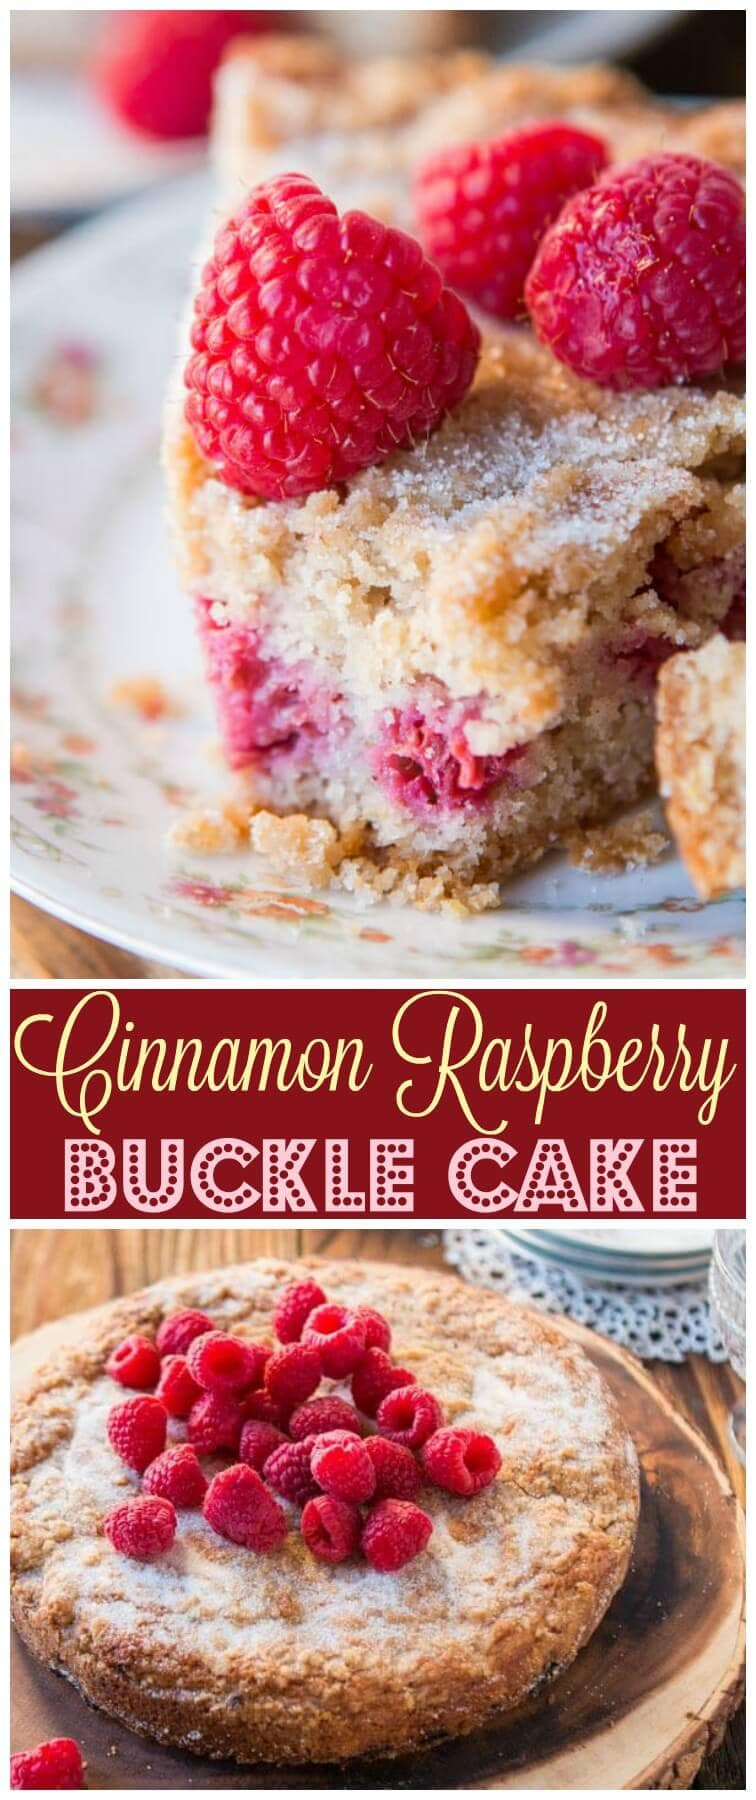 I love finding old fashioned, favorite family recipes that you may have grown up eating at Grandma's house, like this Cinnamon Raspberry Buckle Cake.. ohsweetbasil.com